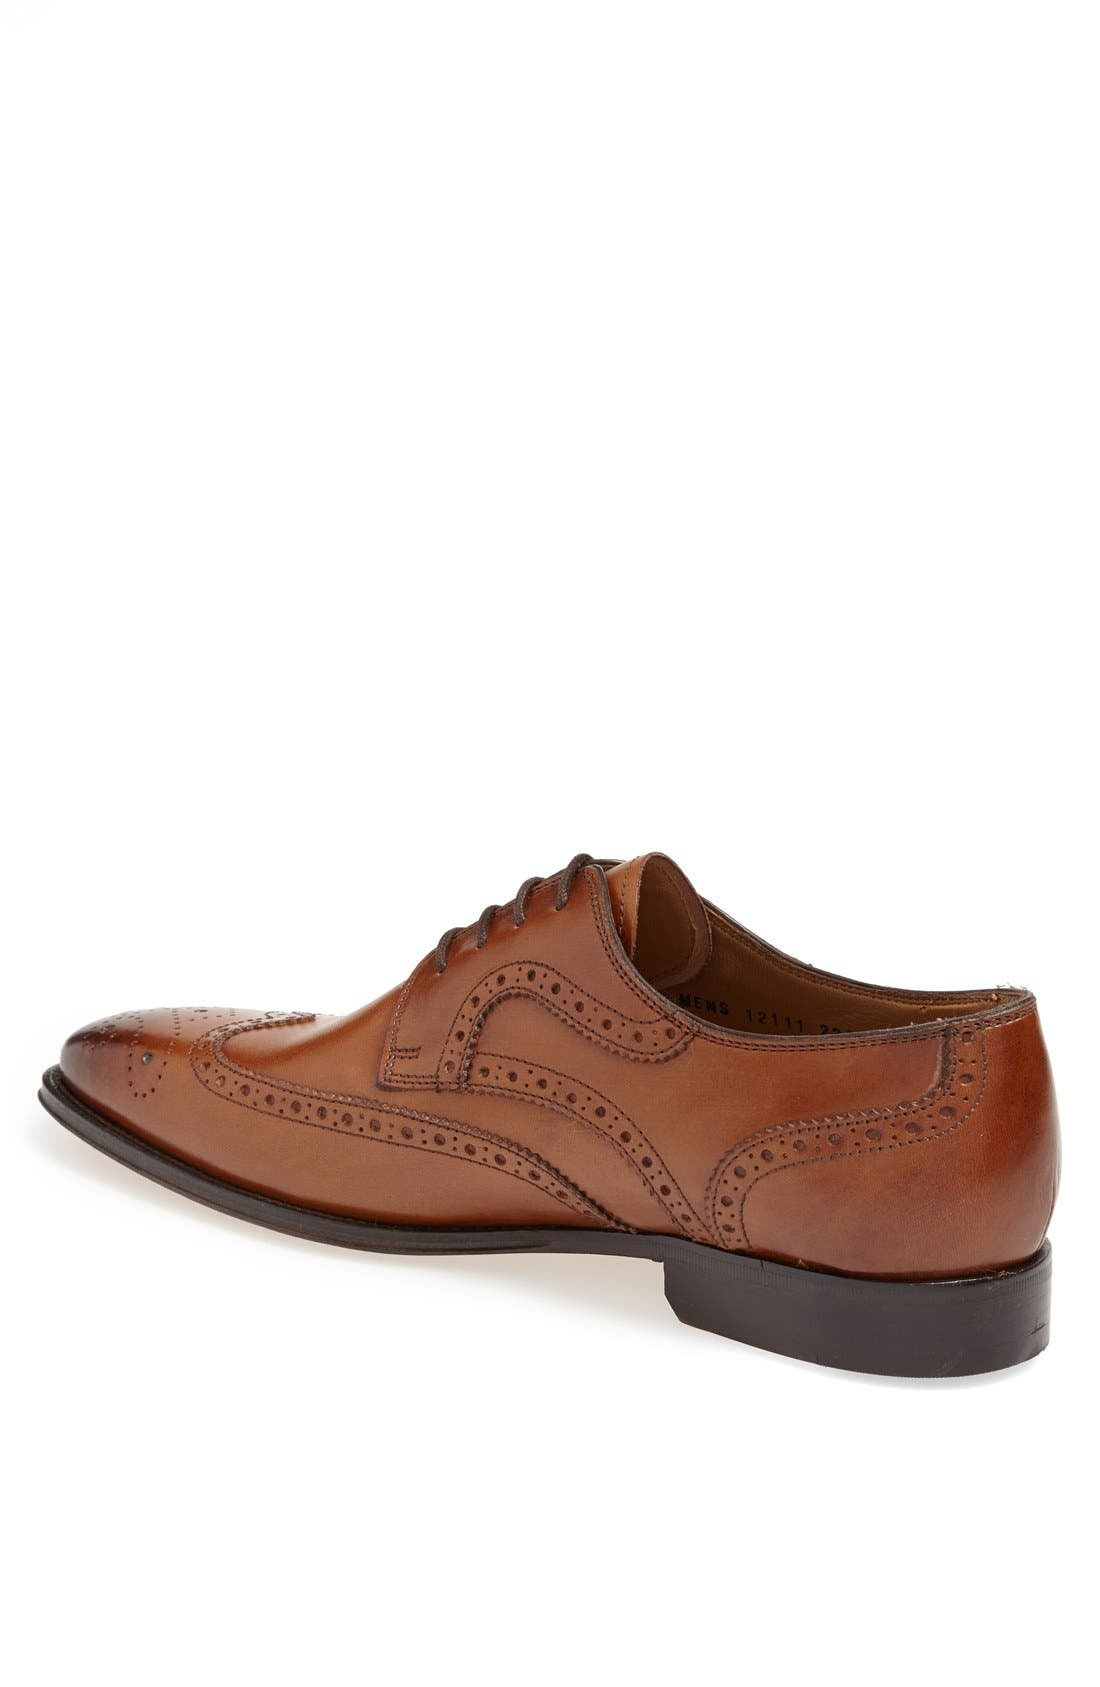 'Classico' Wingtip,                             Alternate thumbnail 2, color,                             COGNAC